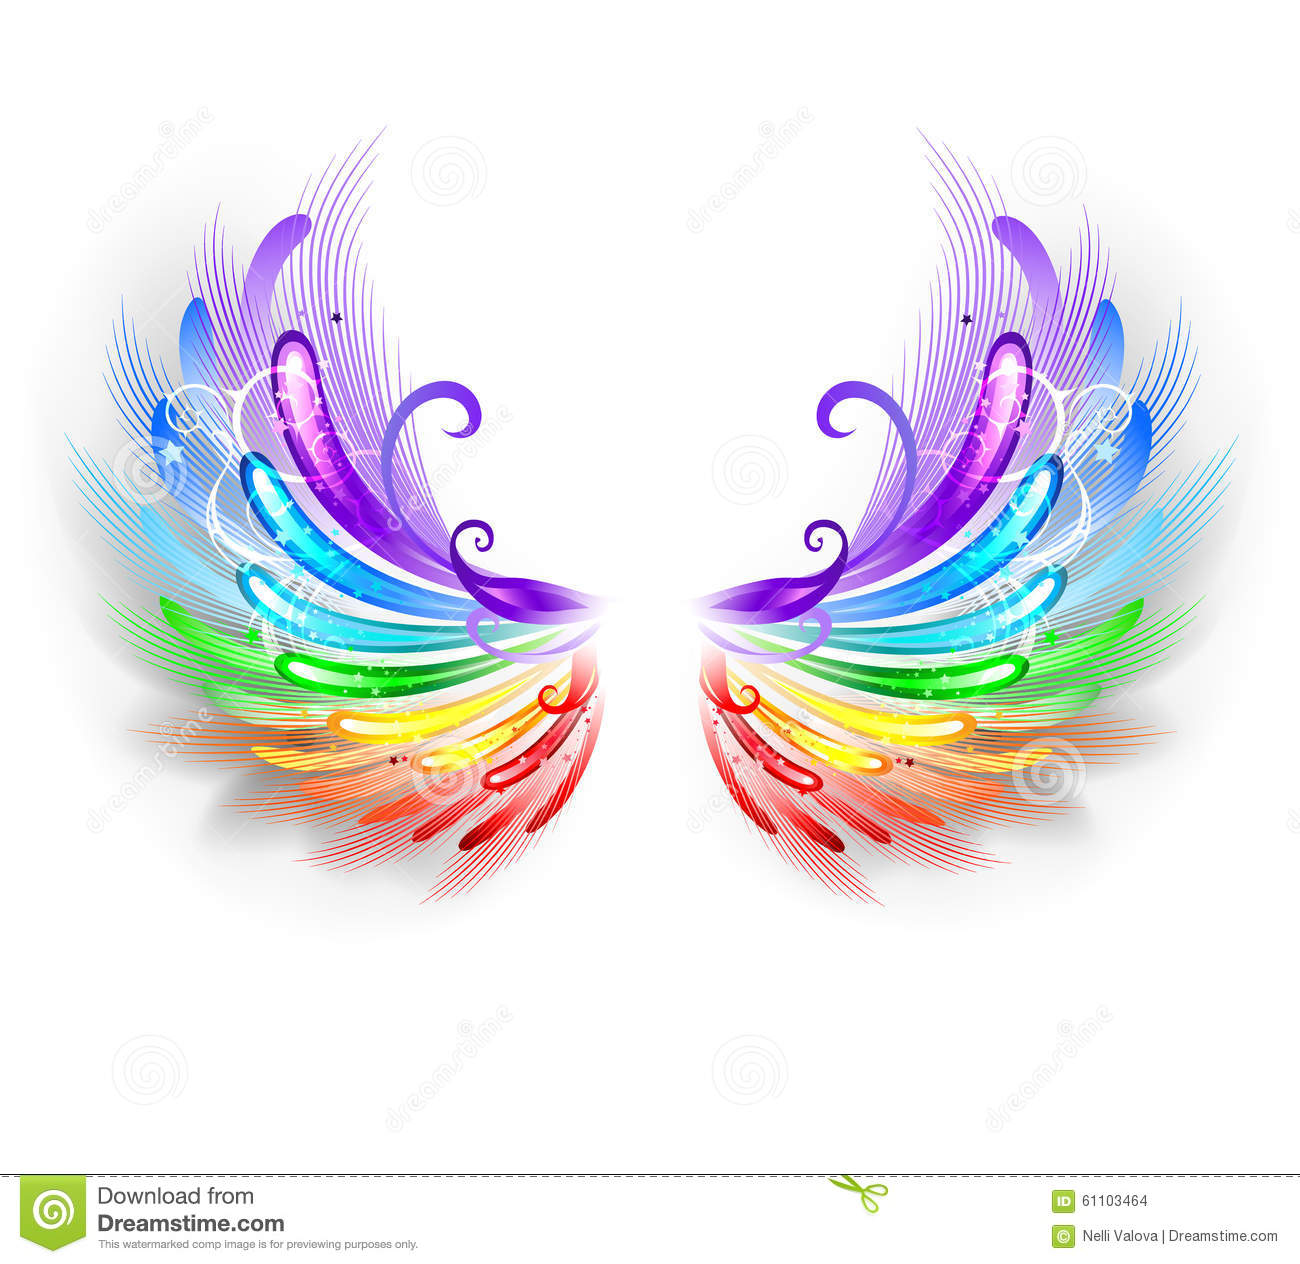 Rainbow Wings On A White Background Stock Vector - Image: 61103464